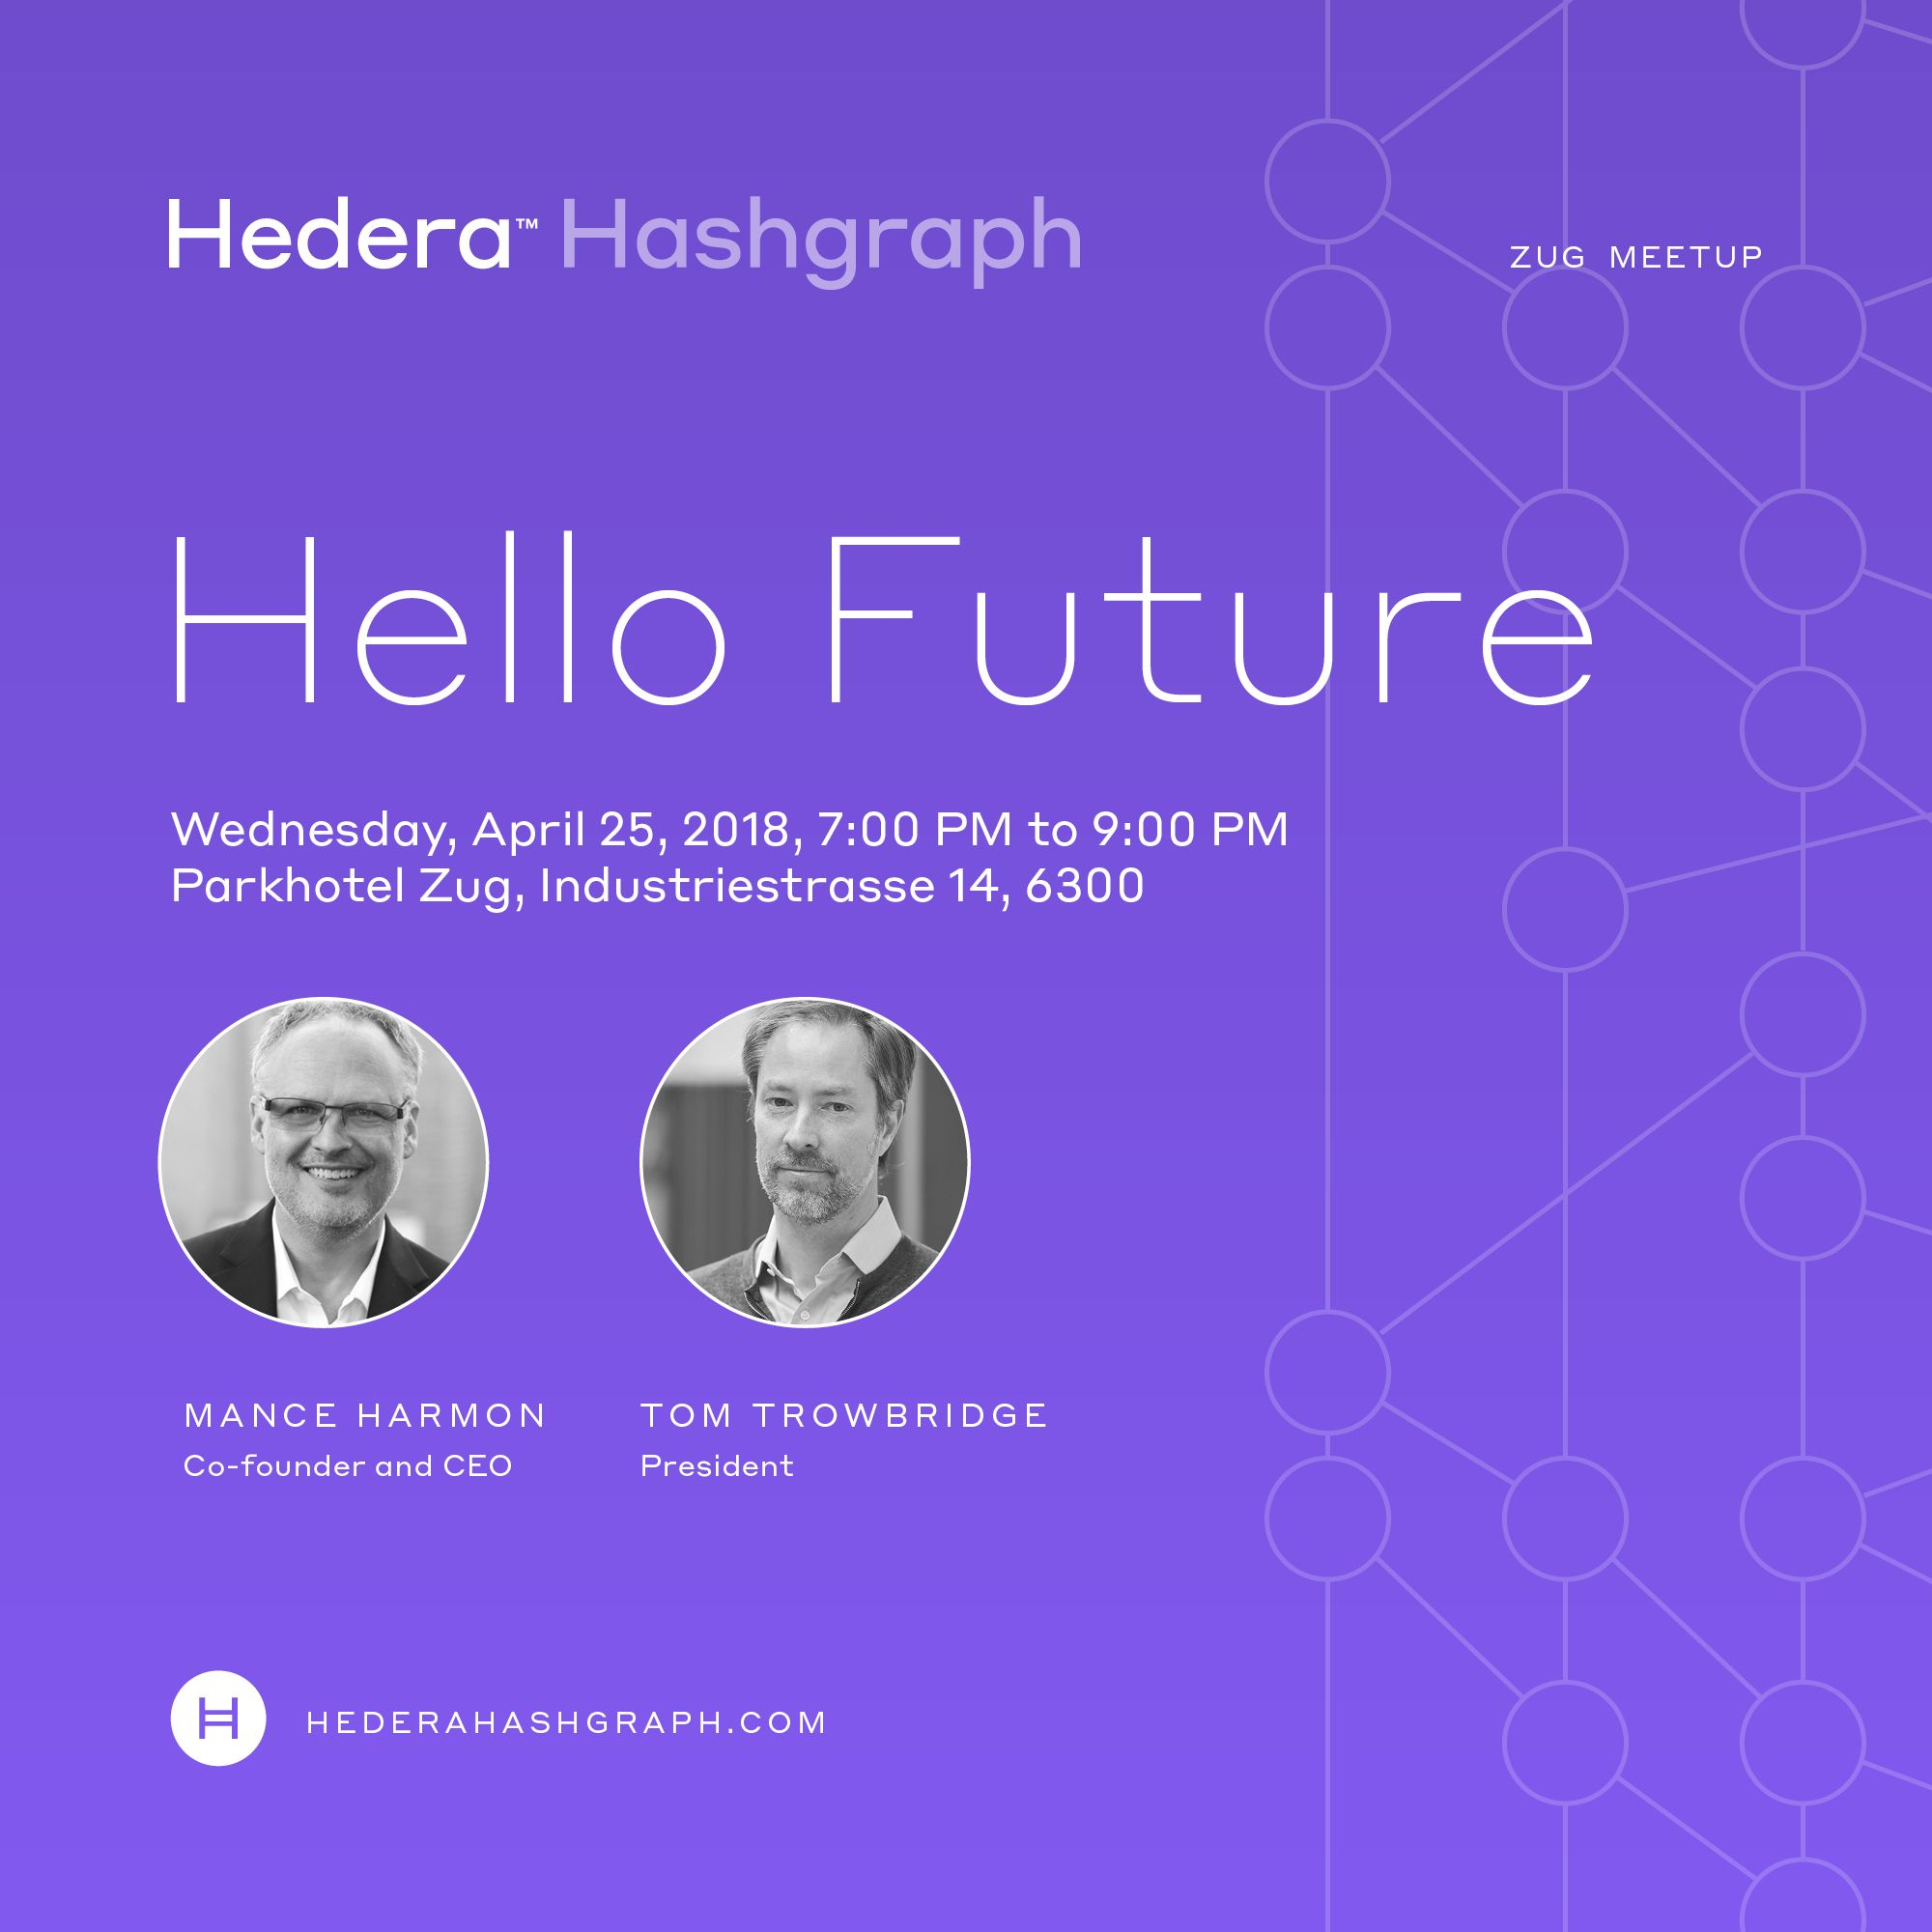 Hedera Hashgraph in Zug - Mance Harmon (CEO), Tom Trowbridge (President)